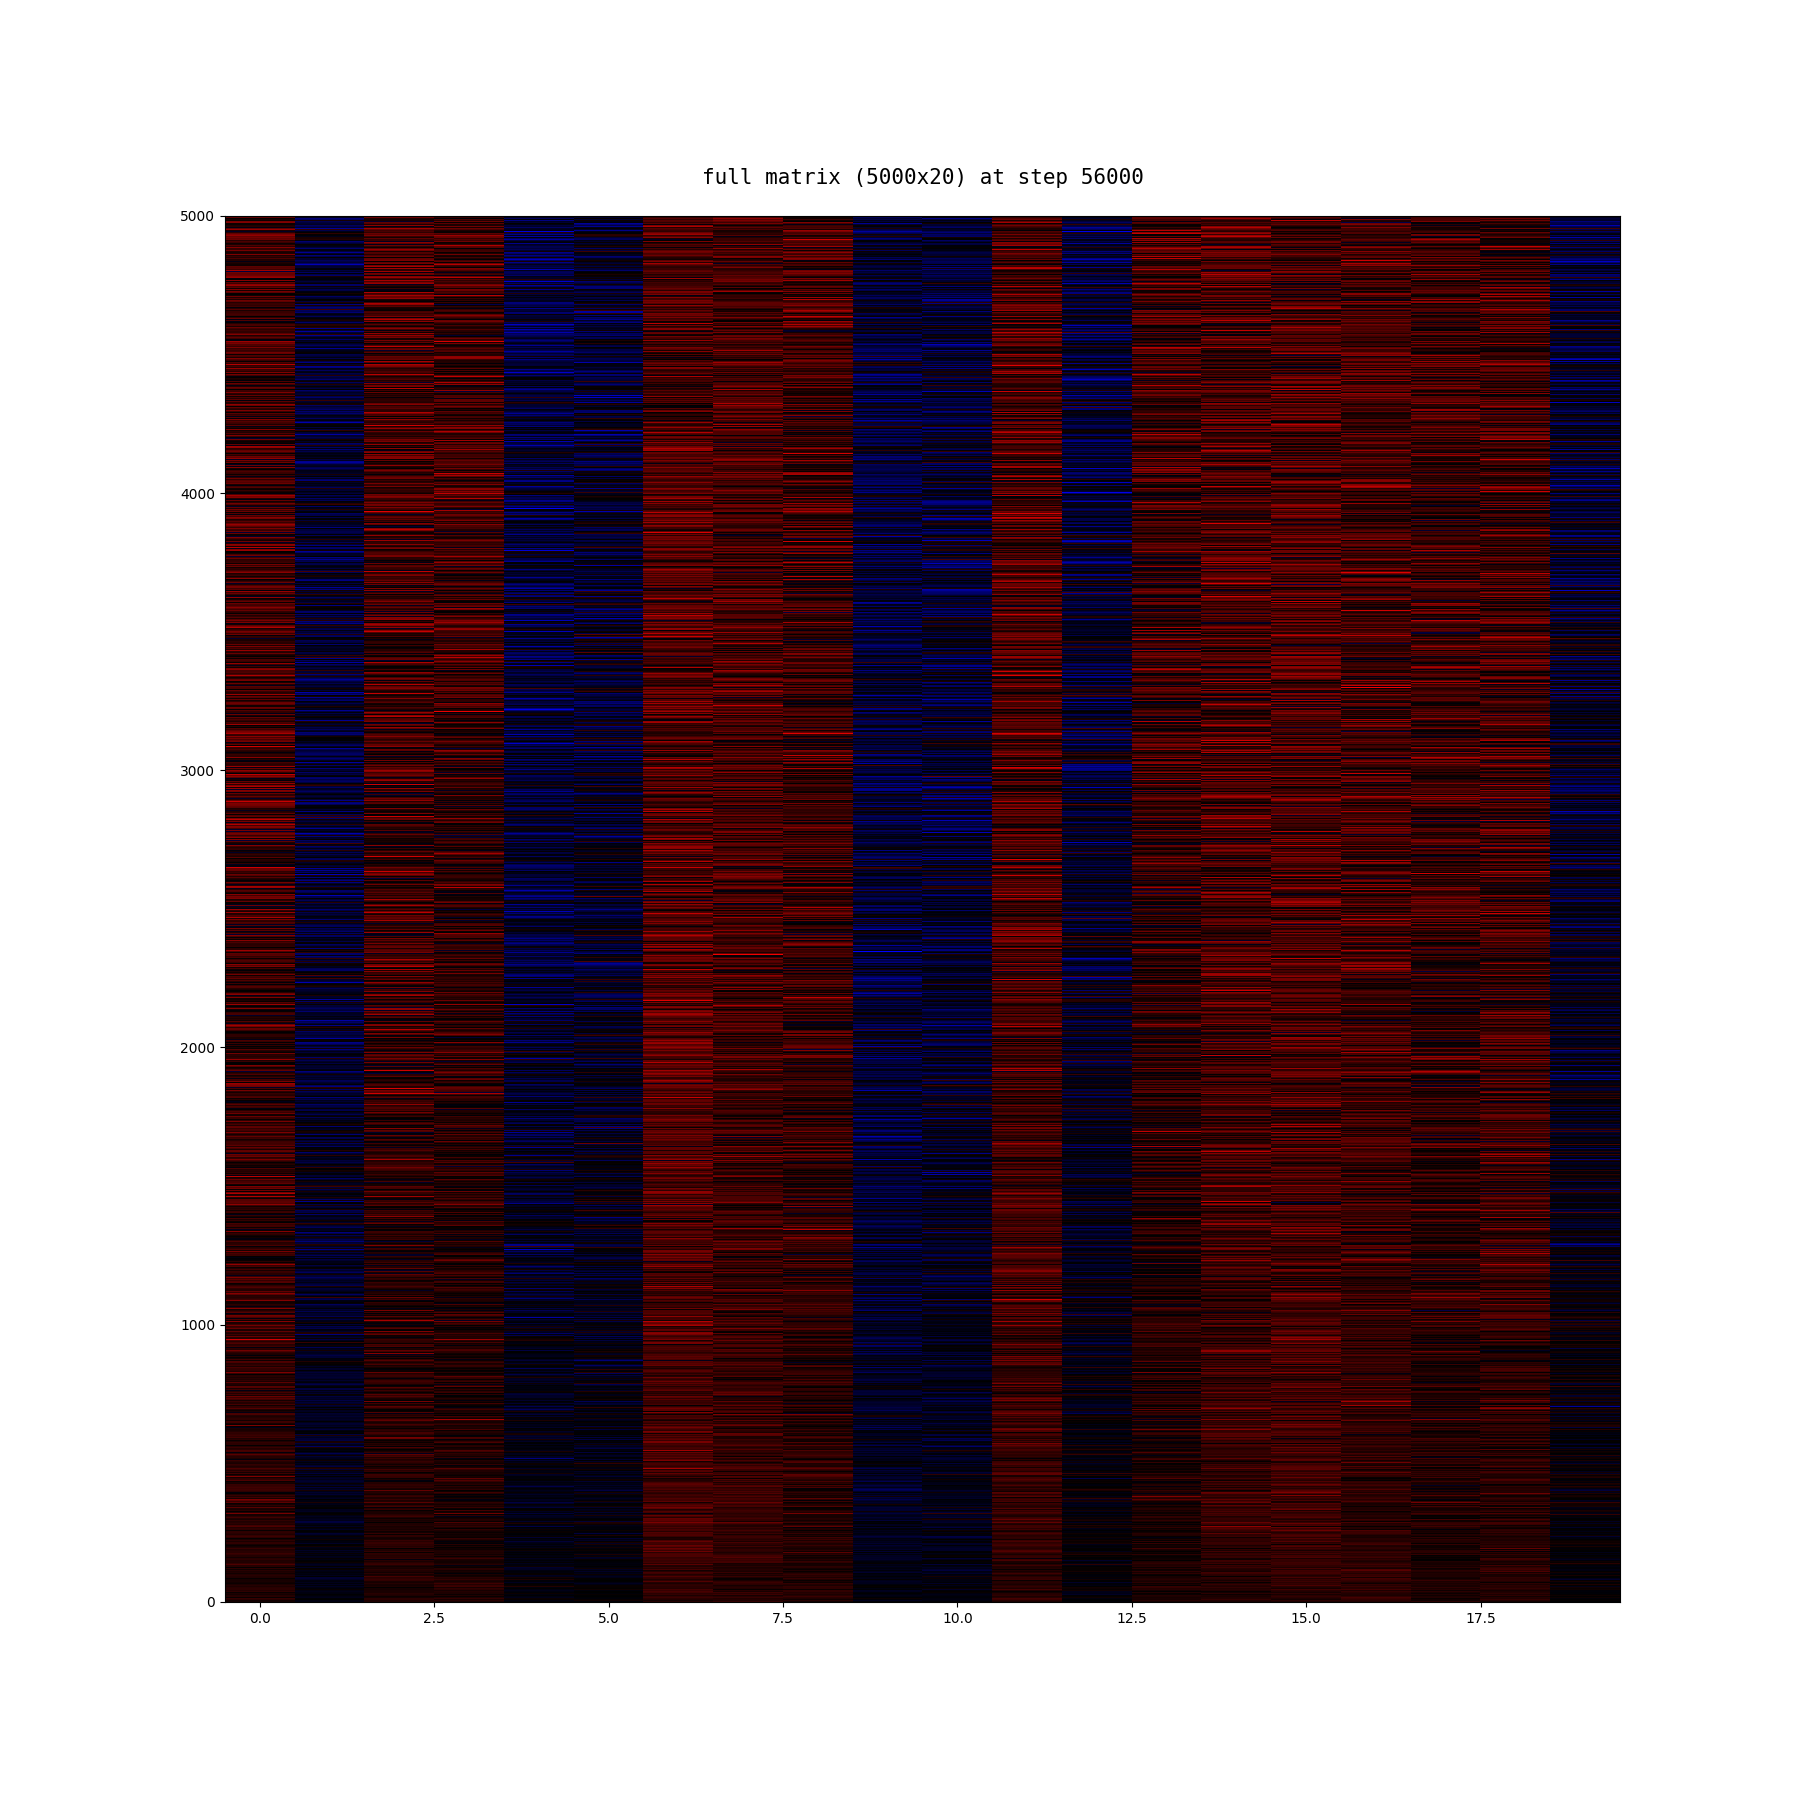 algoliterary_encounter/word2vec/plots/full-matrix/frankenstein-full-matrix-at-step_56000.png